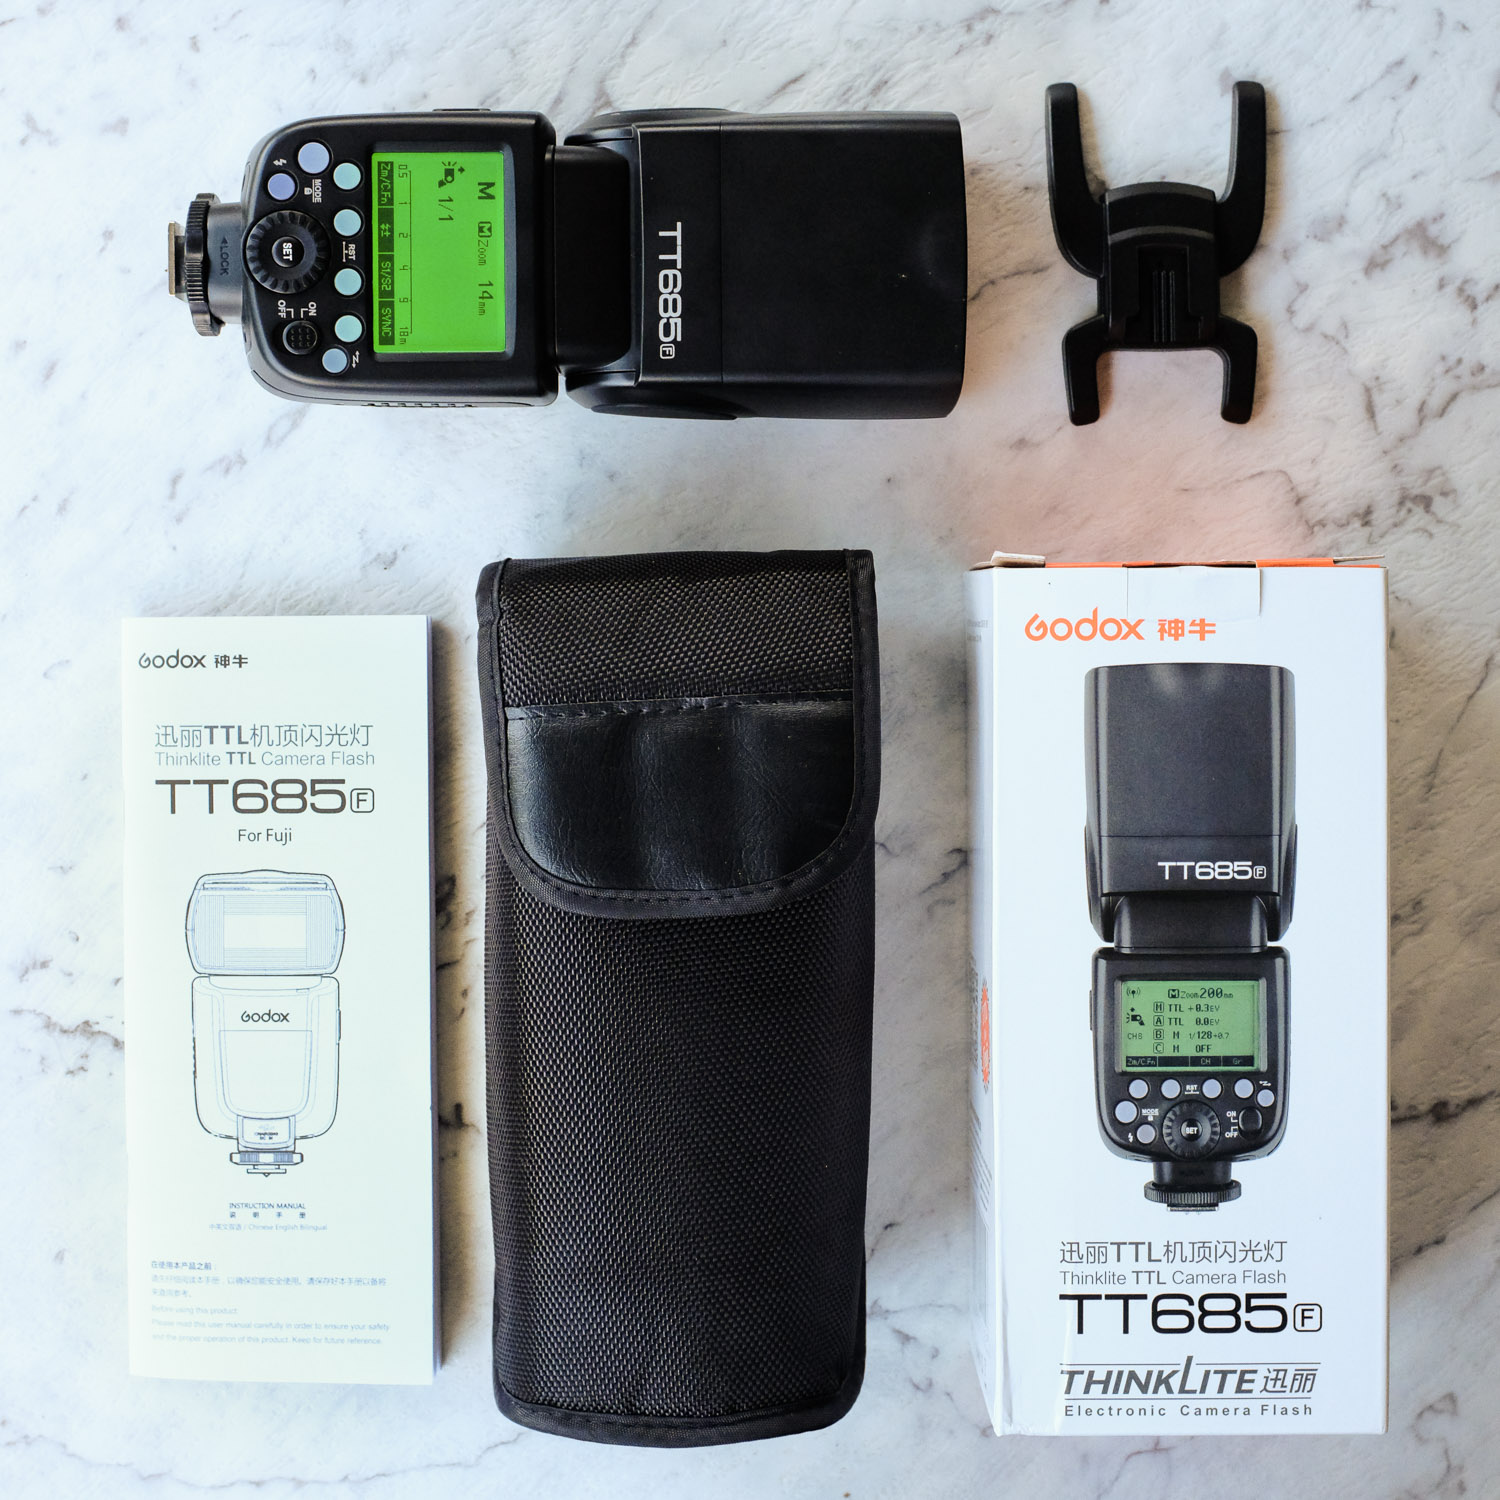 Image: Unboxing the contents of TT5685F